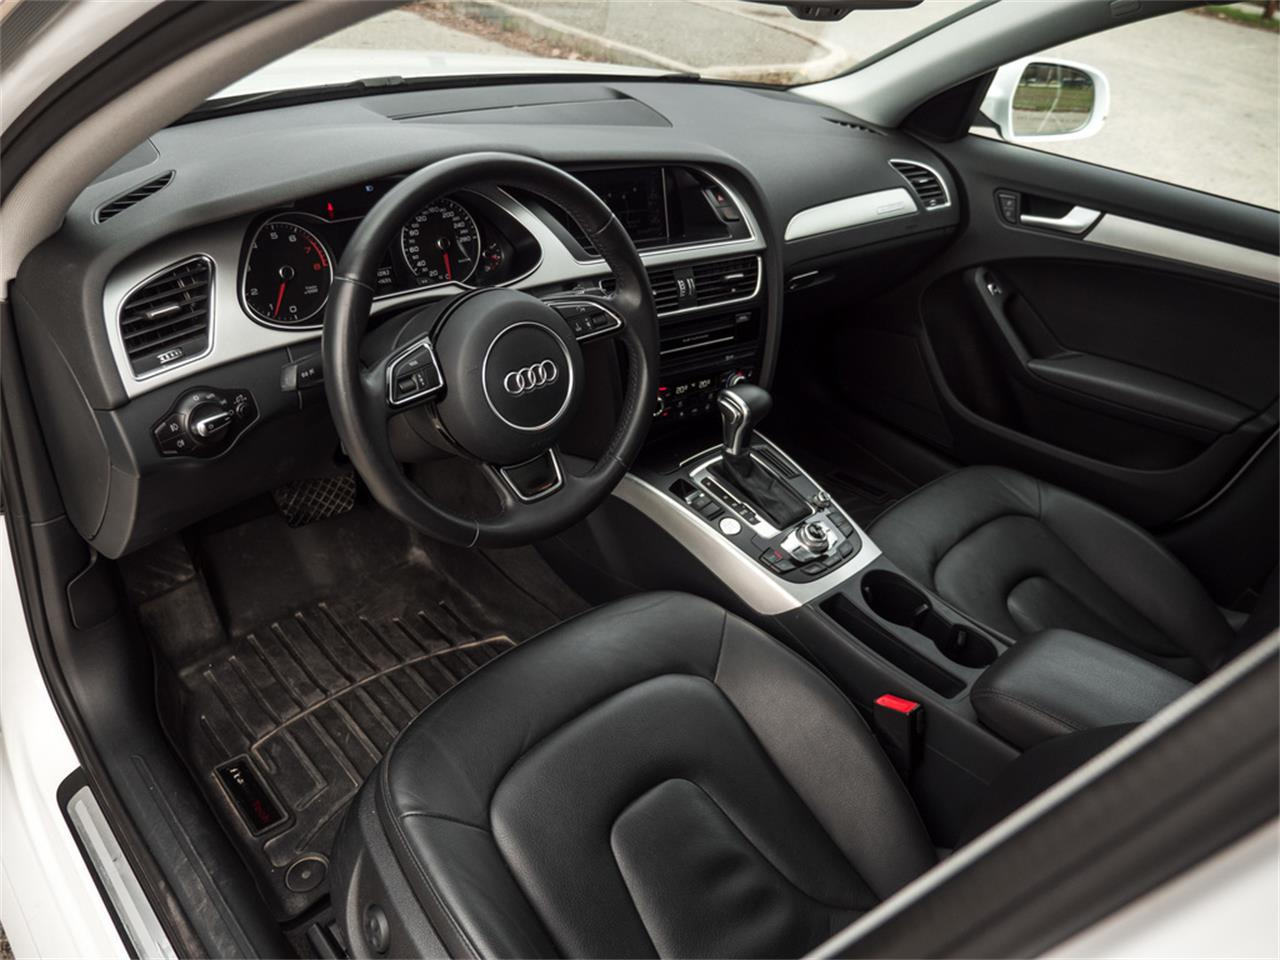 Large Picture of '16 Audi A4 located in British Columbia - Q9PX